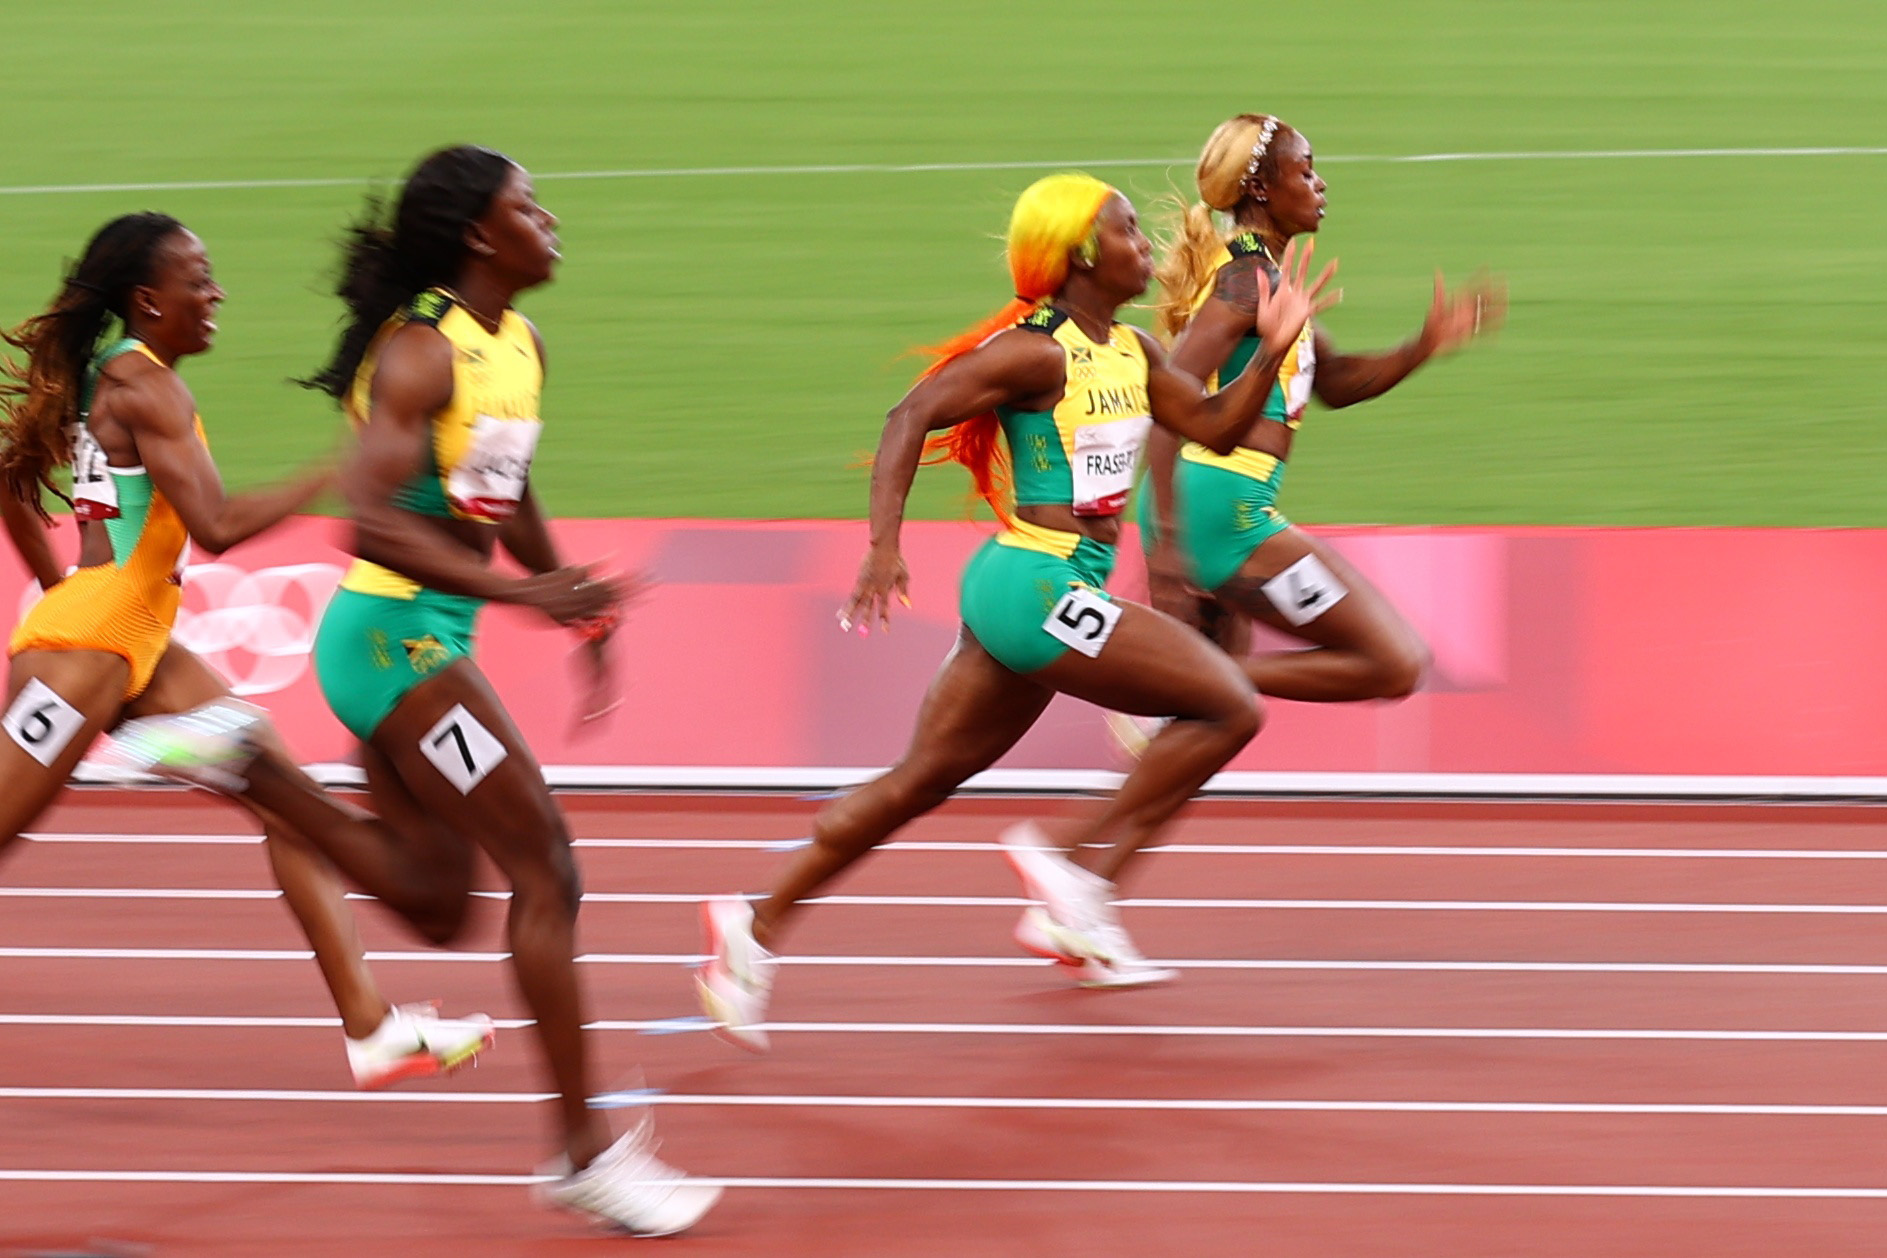 Tokyo 2020 Olympics - Athletics - Women's 100m - Final - OLS - Olympic Stadium, Tokyo, Japan - July 31, 2021. Elaine Thompson-Herah of Jamaica and Shelly-Ann Fraser-Pryce of Jamaica in action REUTERS/Andrew Boyers